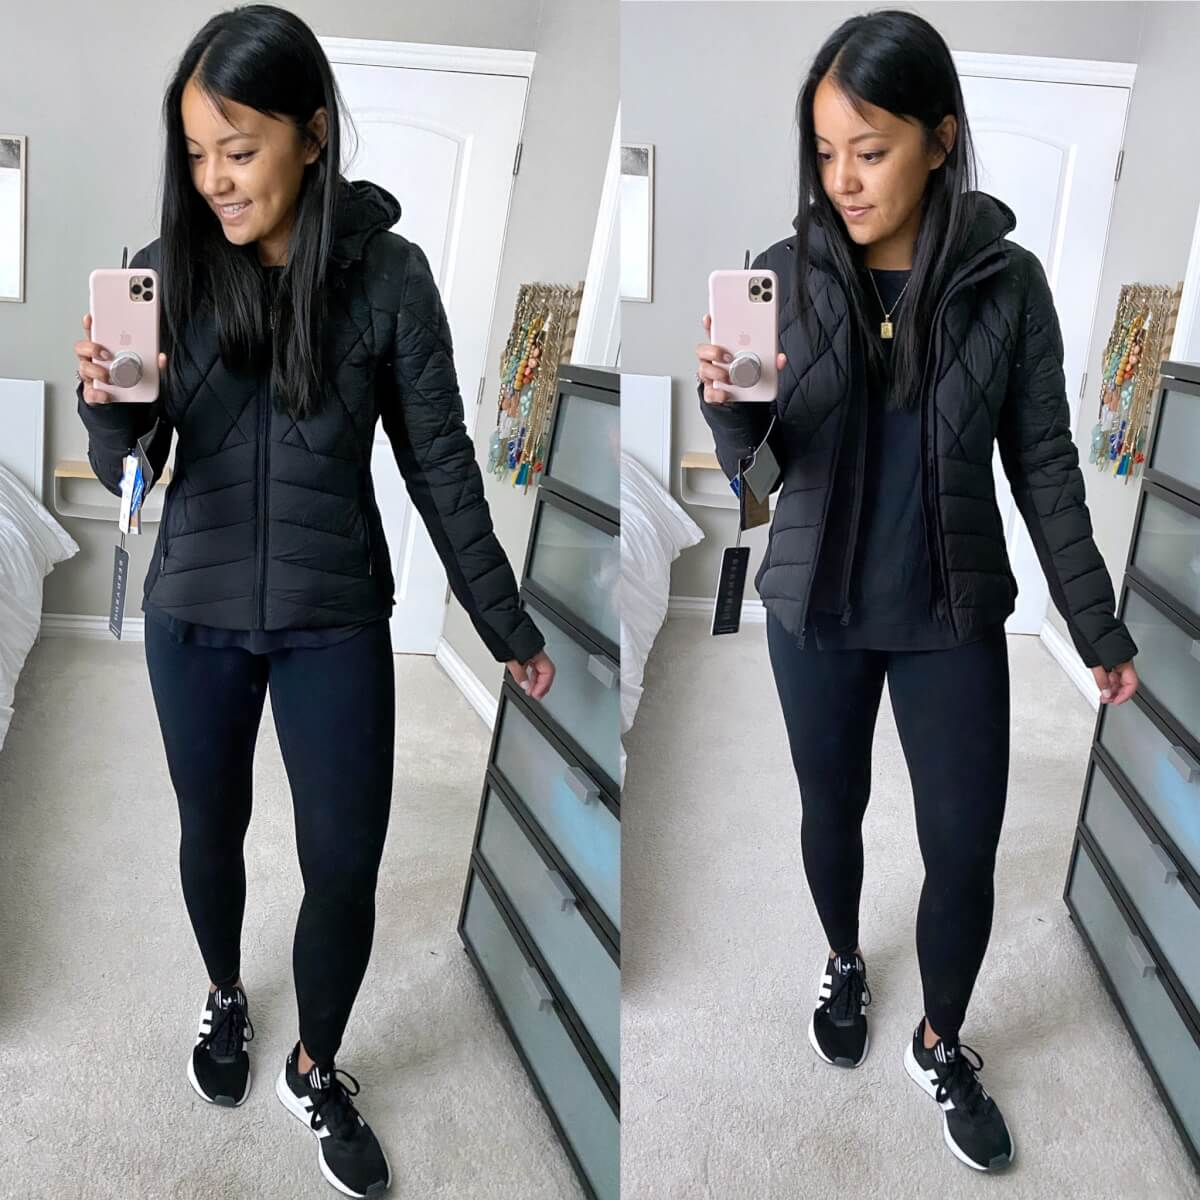 NSale Casual Athleisure Outfit: navy sweatshirt + black leggings + black sneakers + black puffer jacket + gold initial pendant necklace